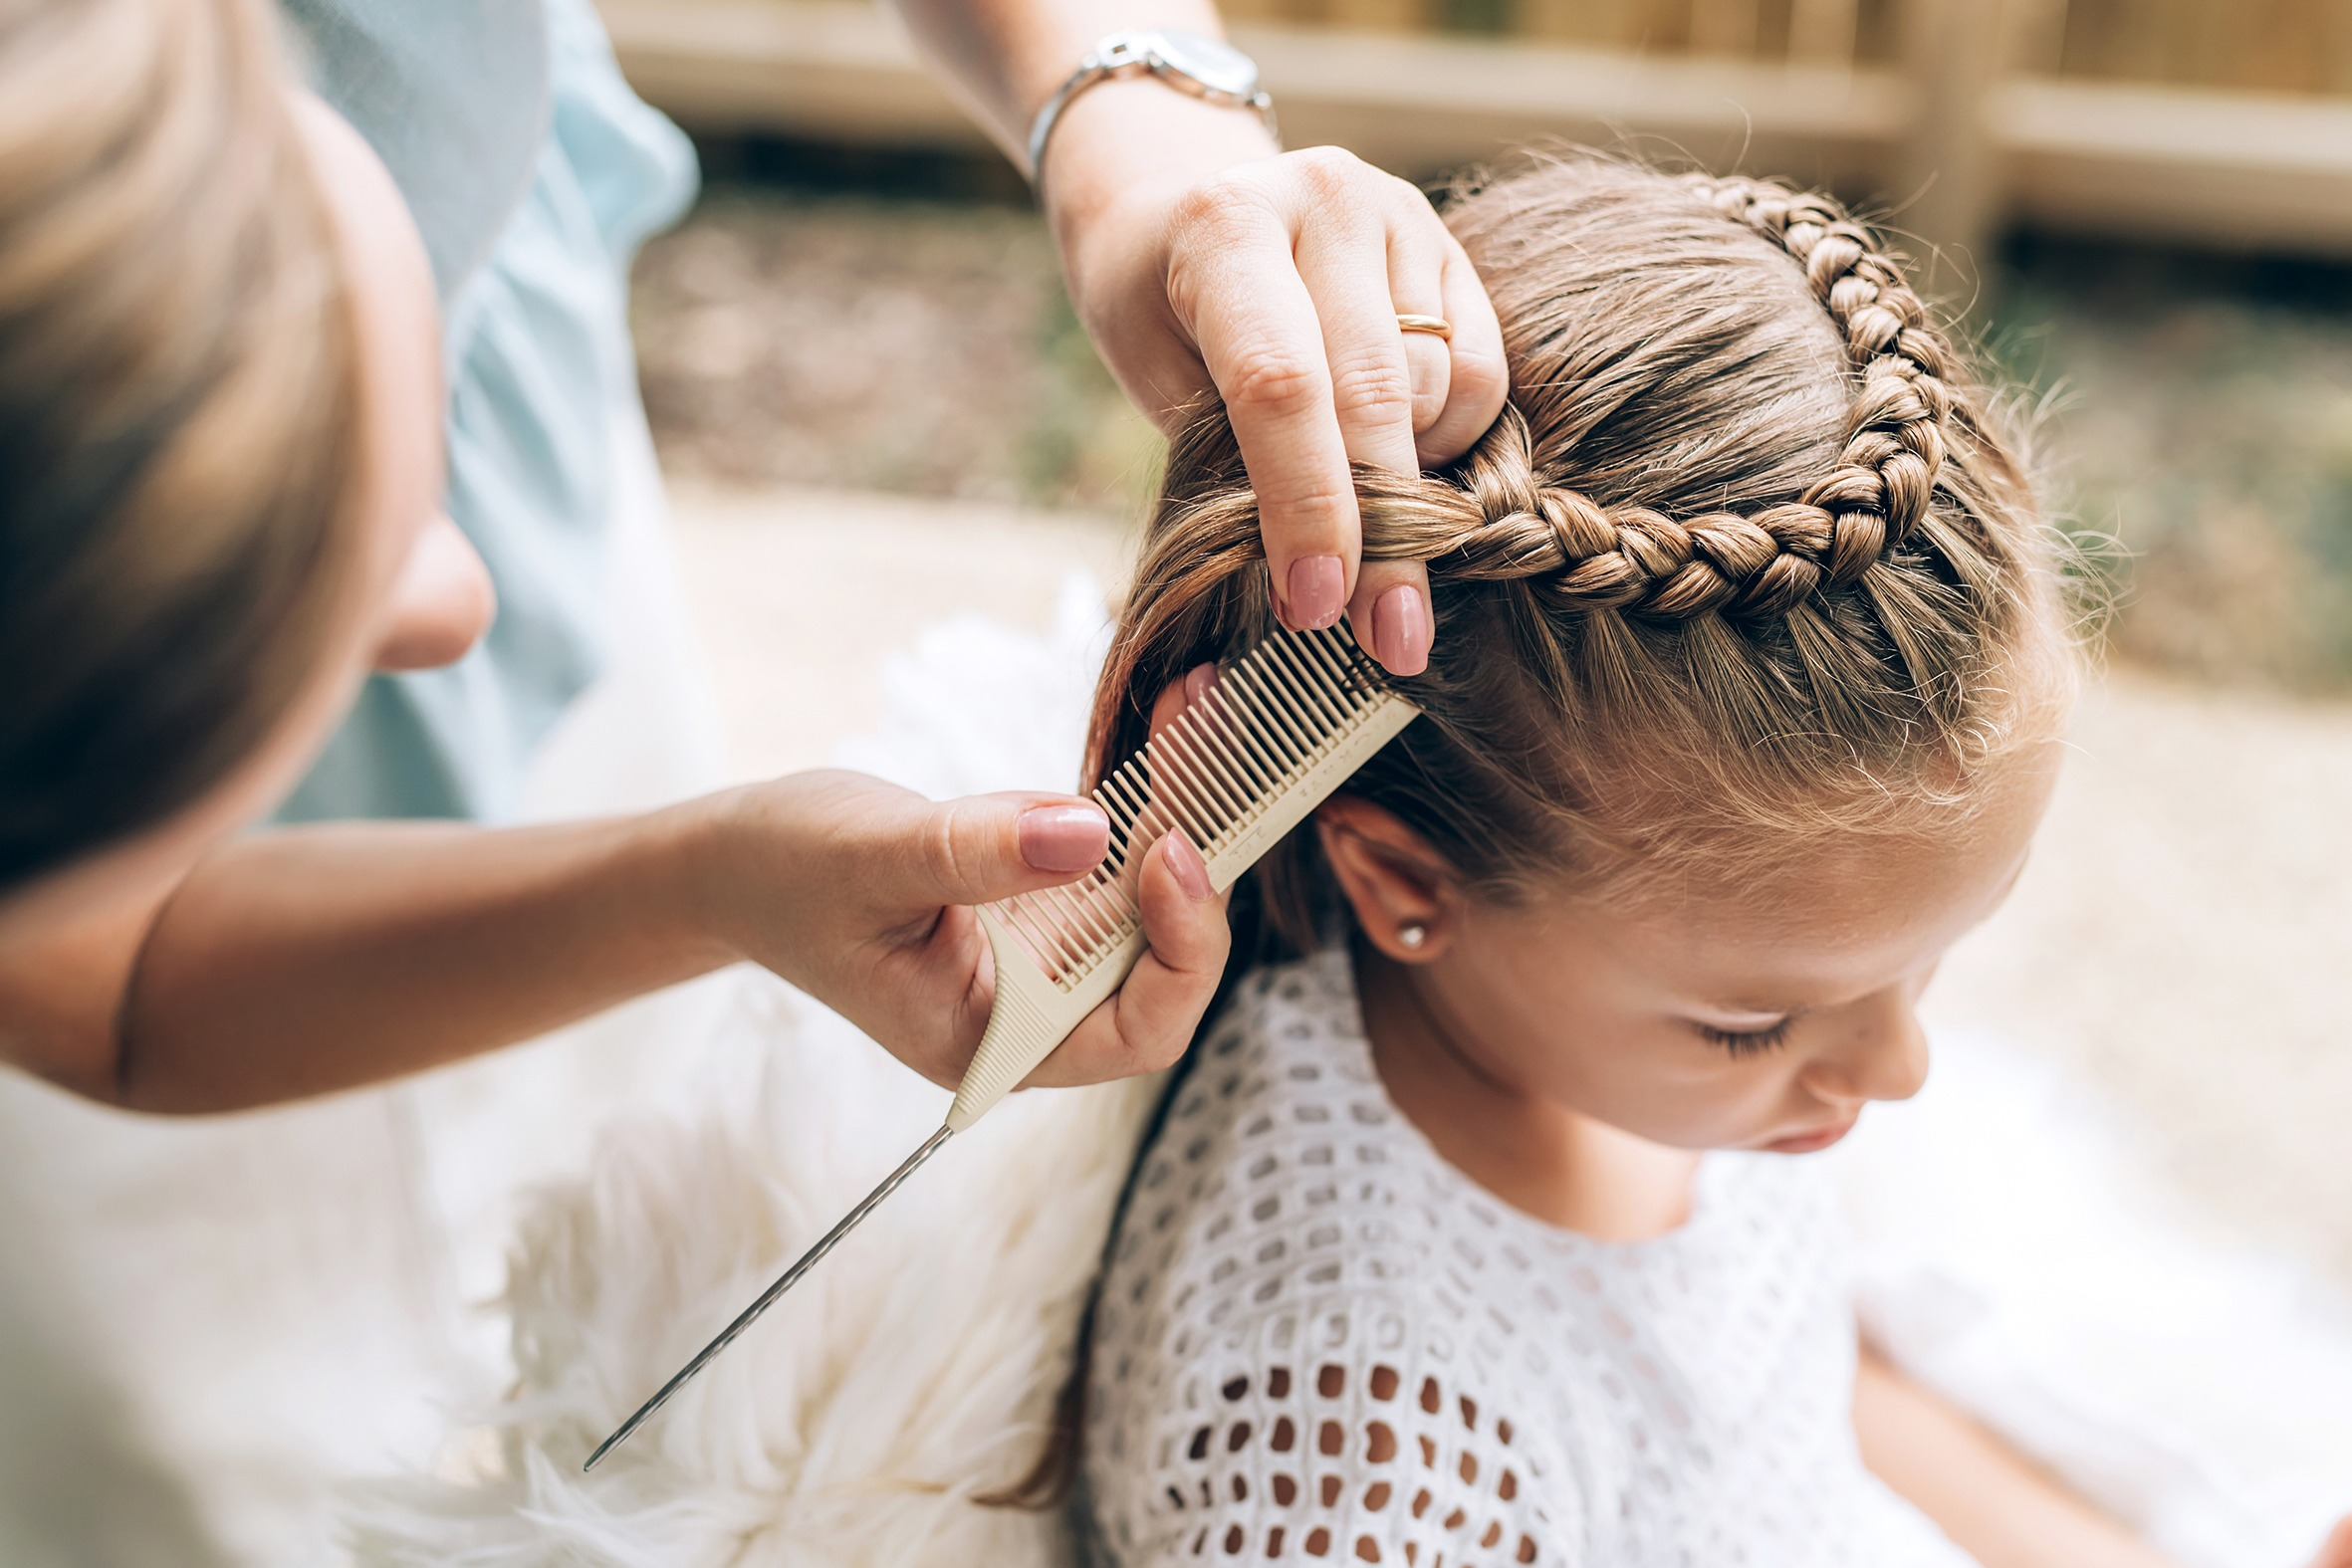 Mother does hair braid to her daughter, close up photo.